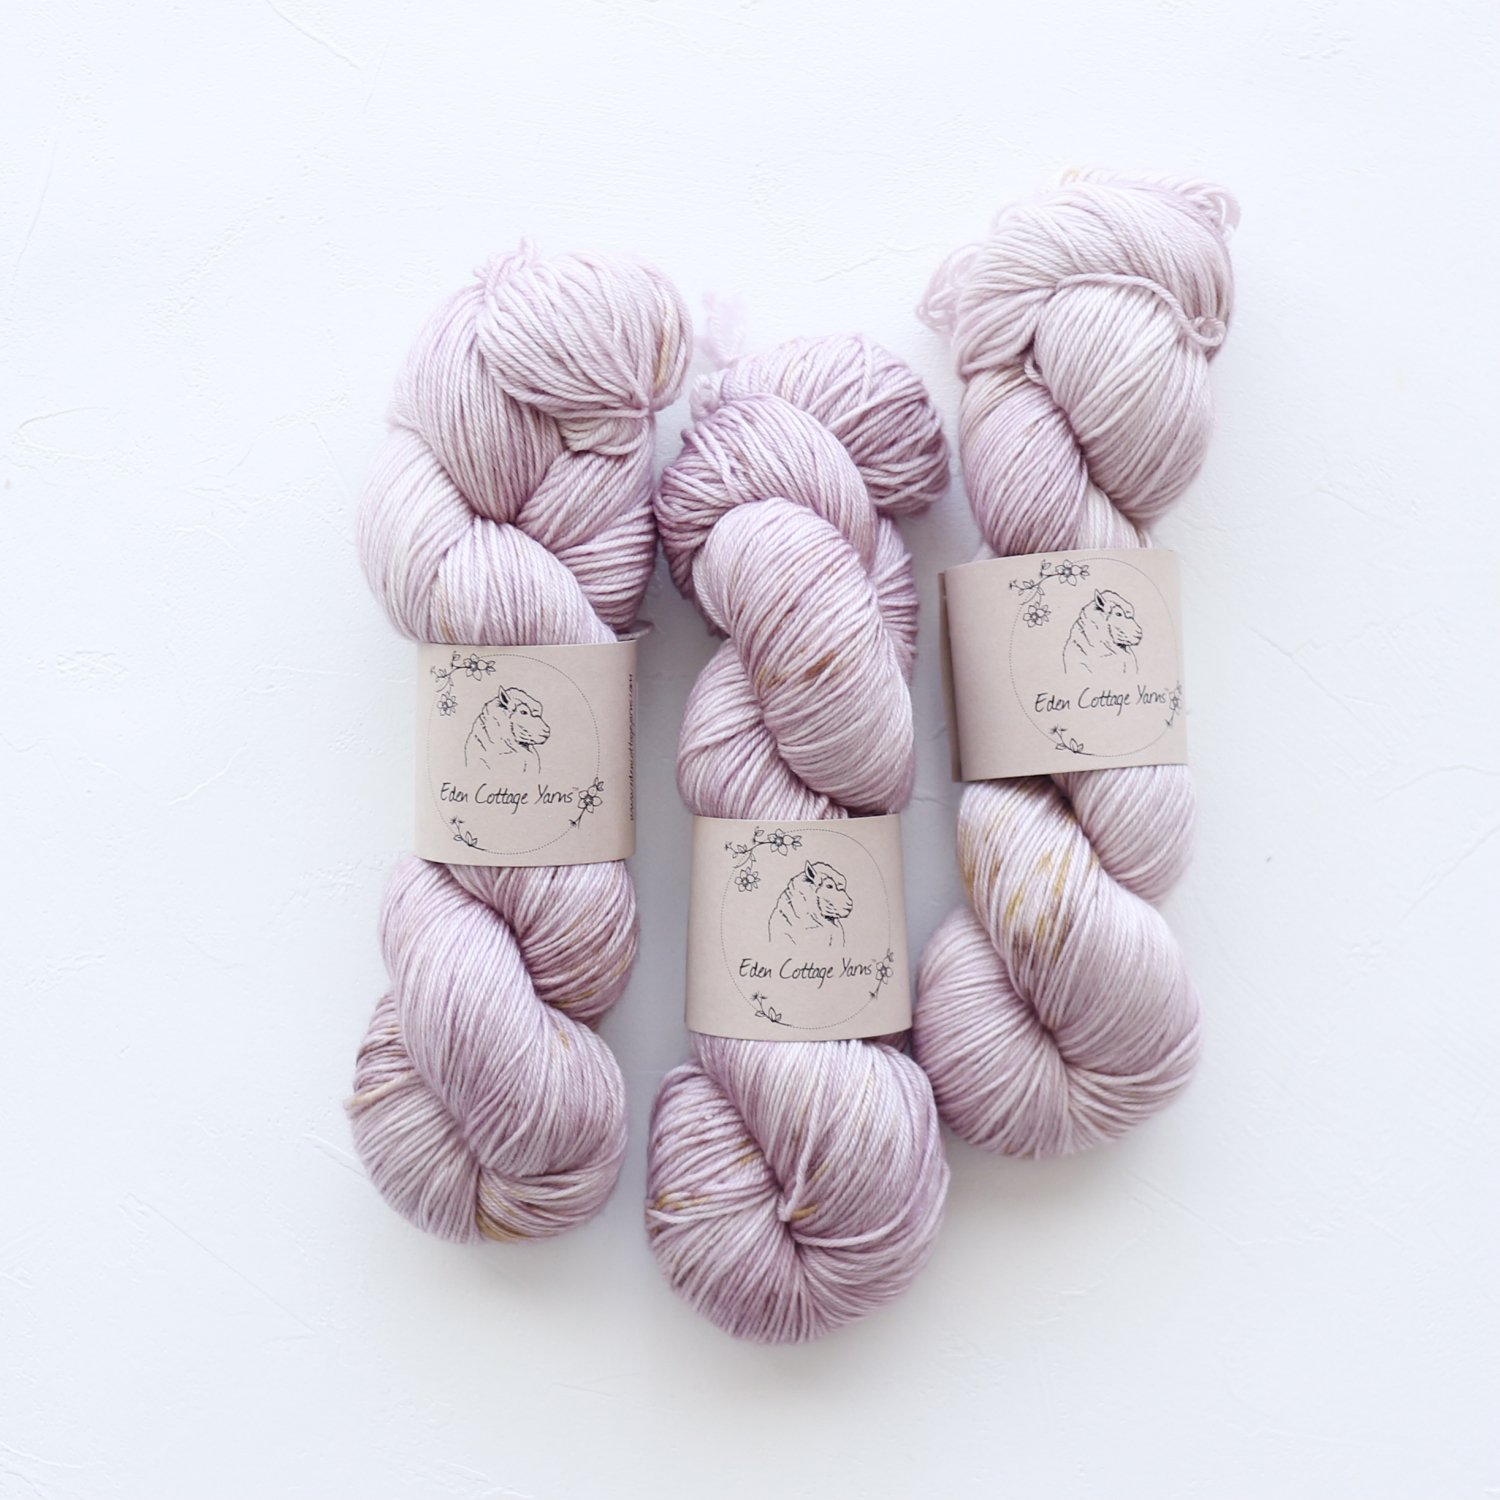 【Eden Cottage Yarns】<br>Pendle 4ply<br>Autumn Hydrangea